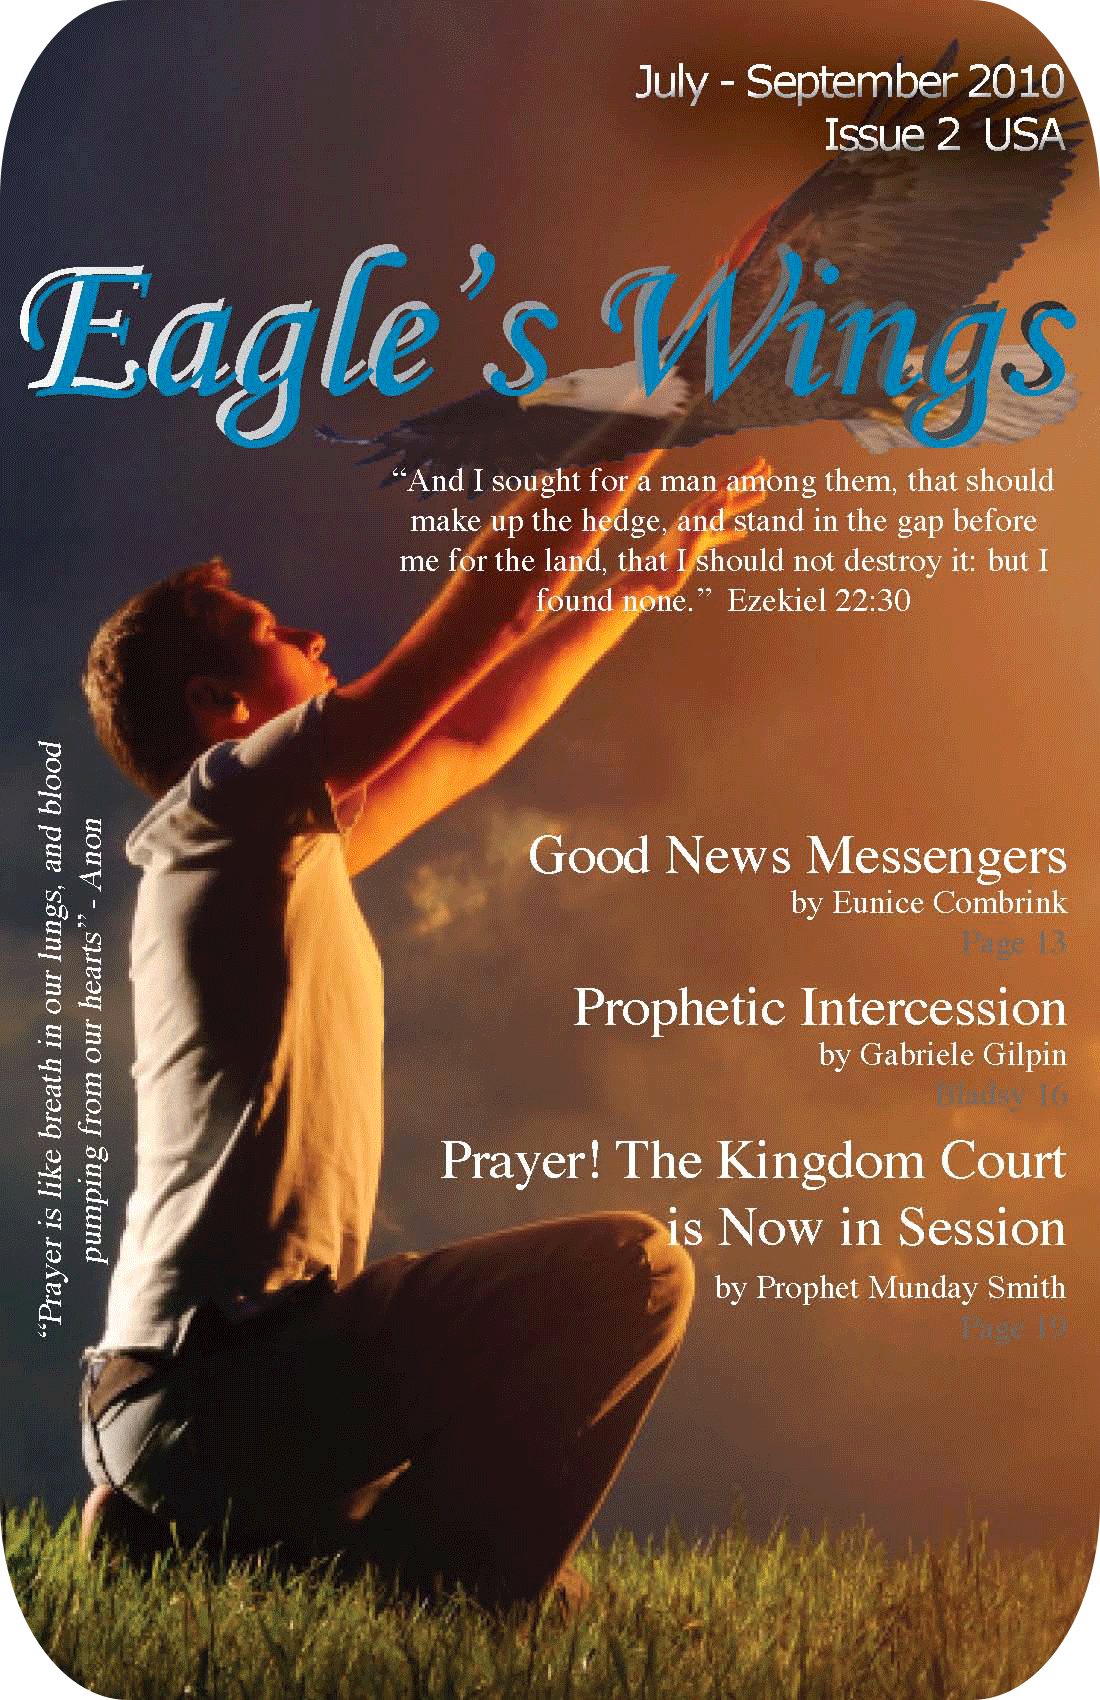 Eagle's Wings Issue 2 - Magazine Cover